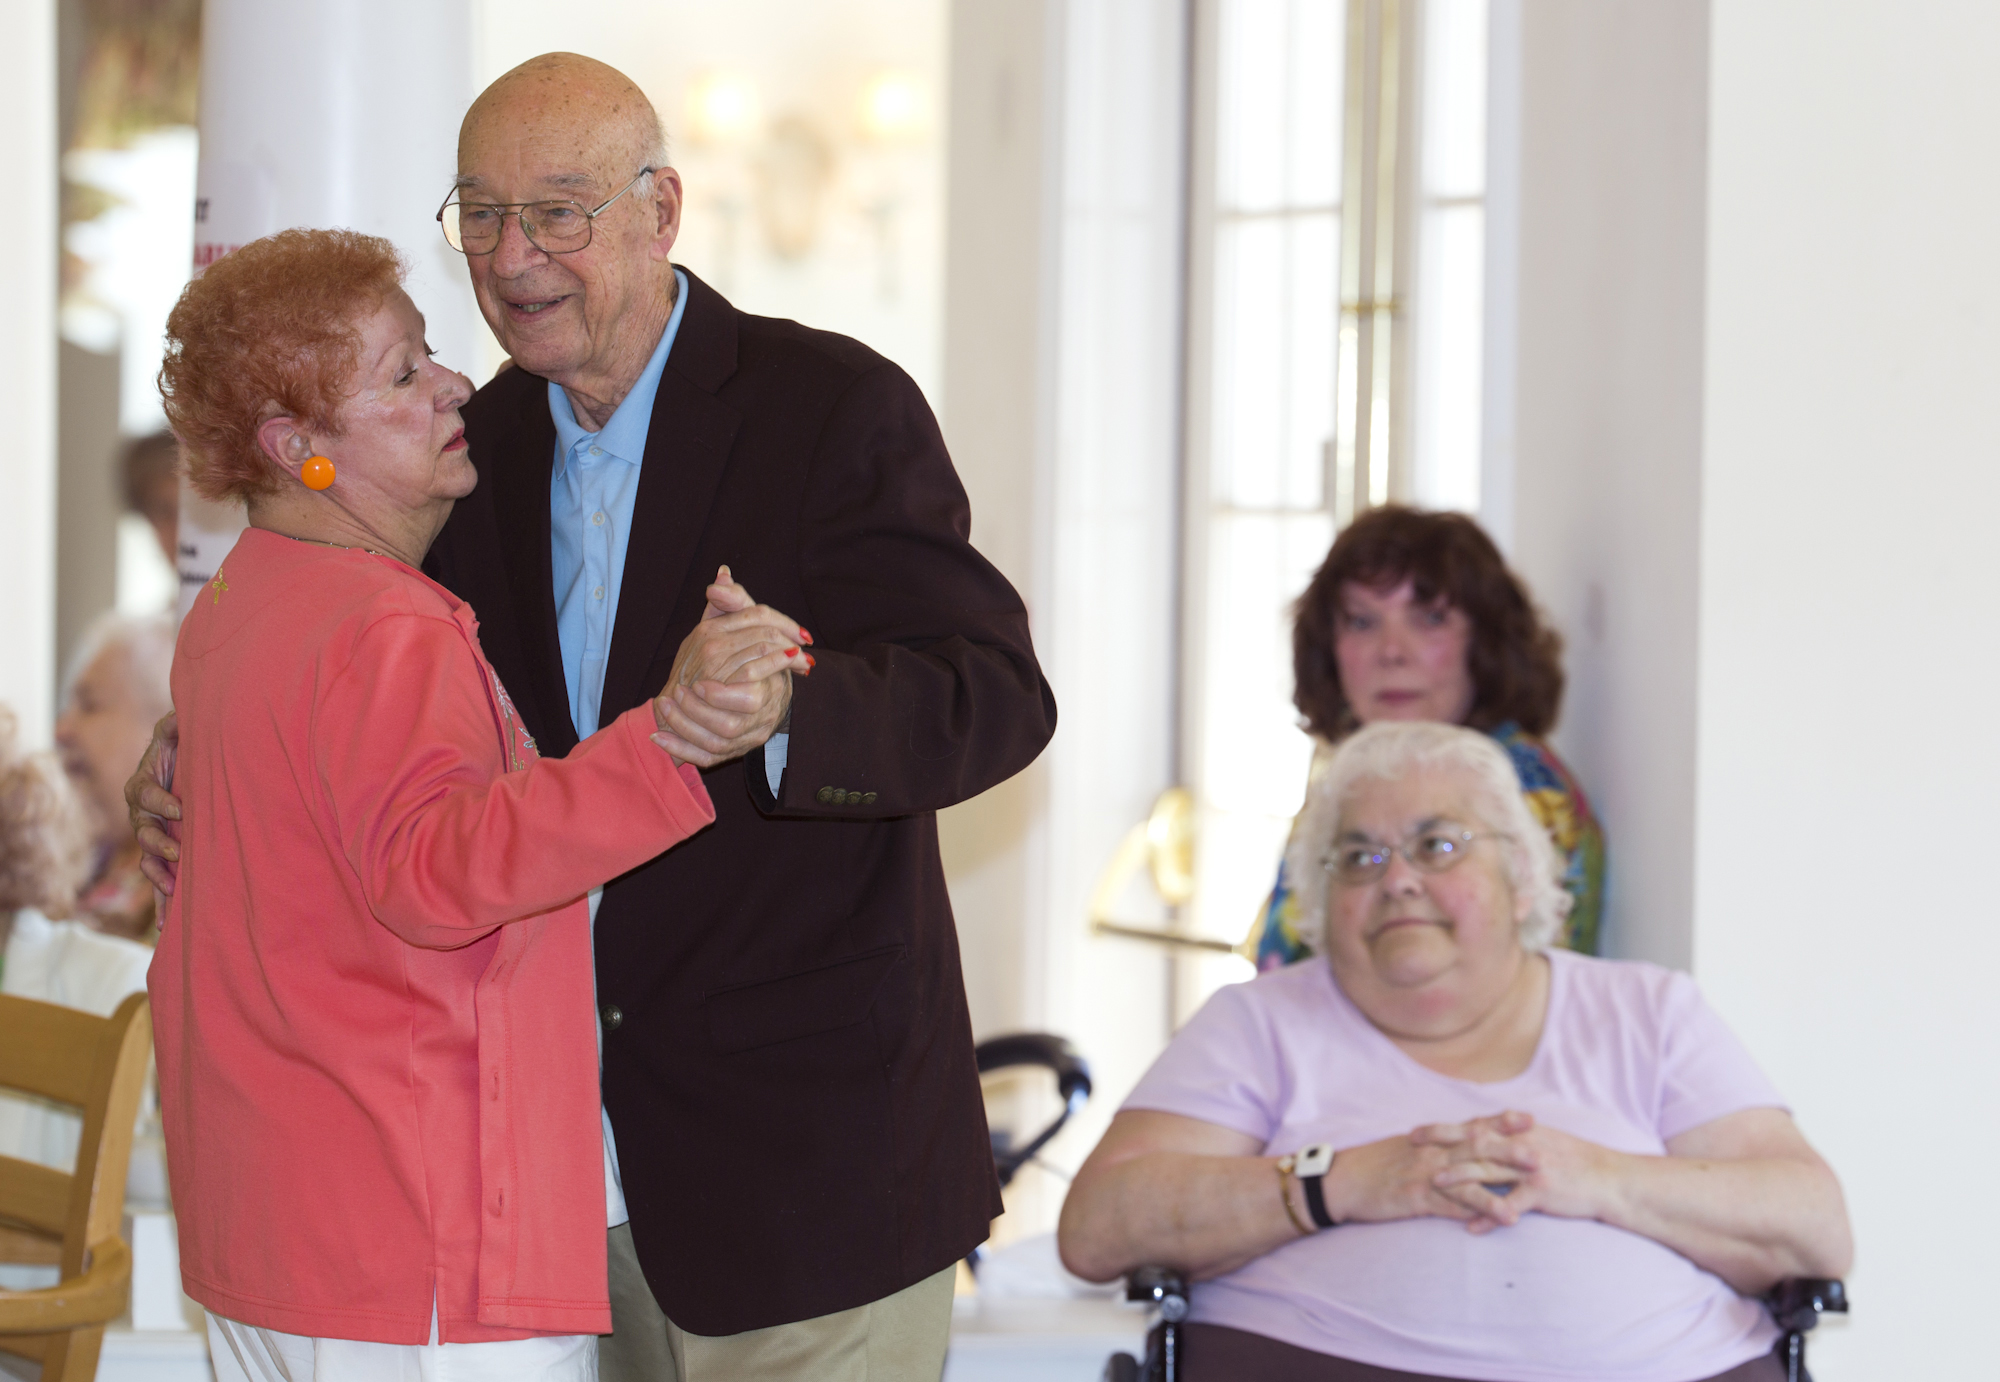 Joyce and Frank dance at Legacy Senior Living Communities, where they first met. Their love for dancing keeps them coming back to the Legacy every week for musical performances.